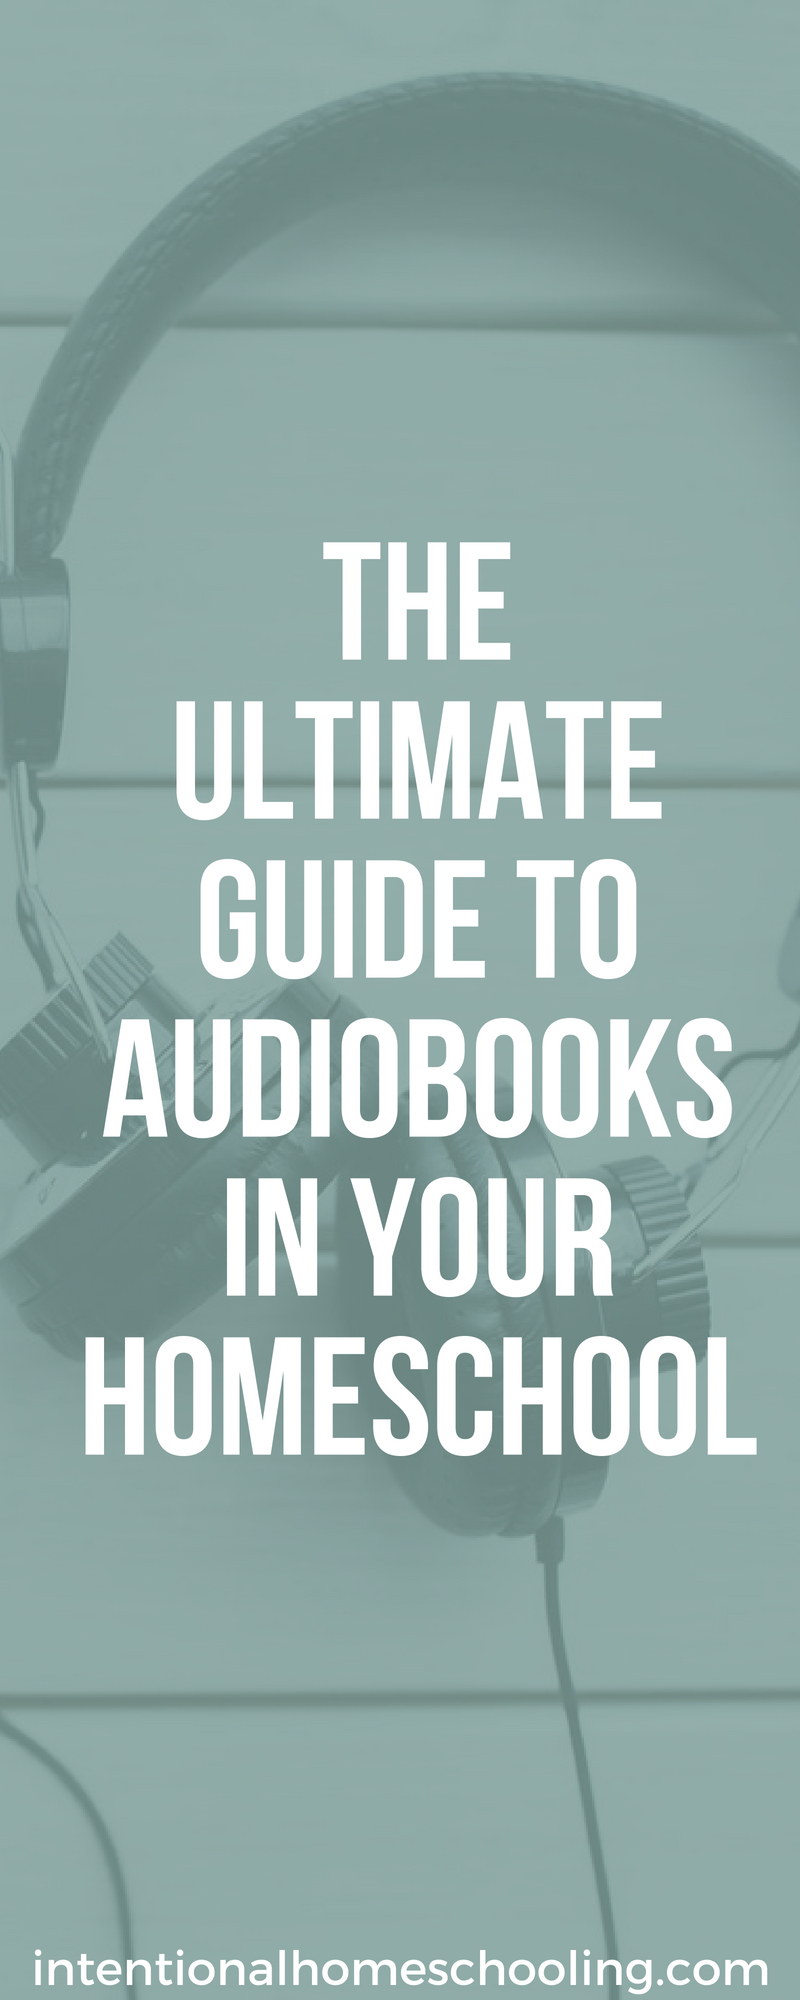 The Ultimate Guide to Using Audiobooks in Your Homeschool